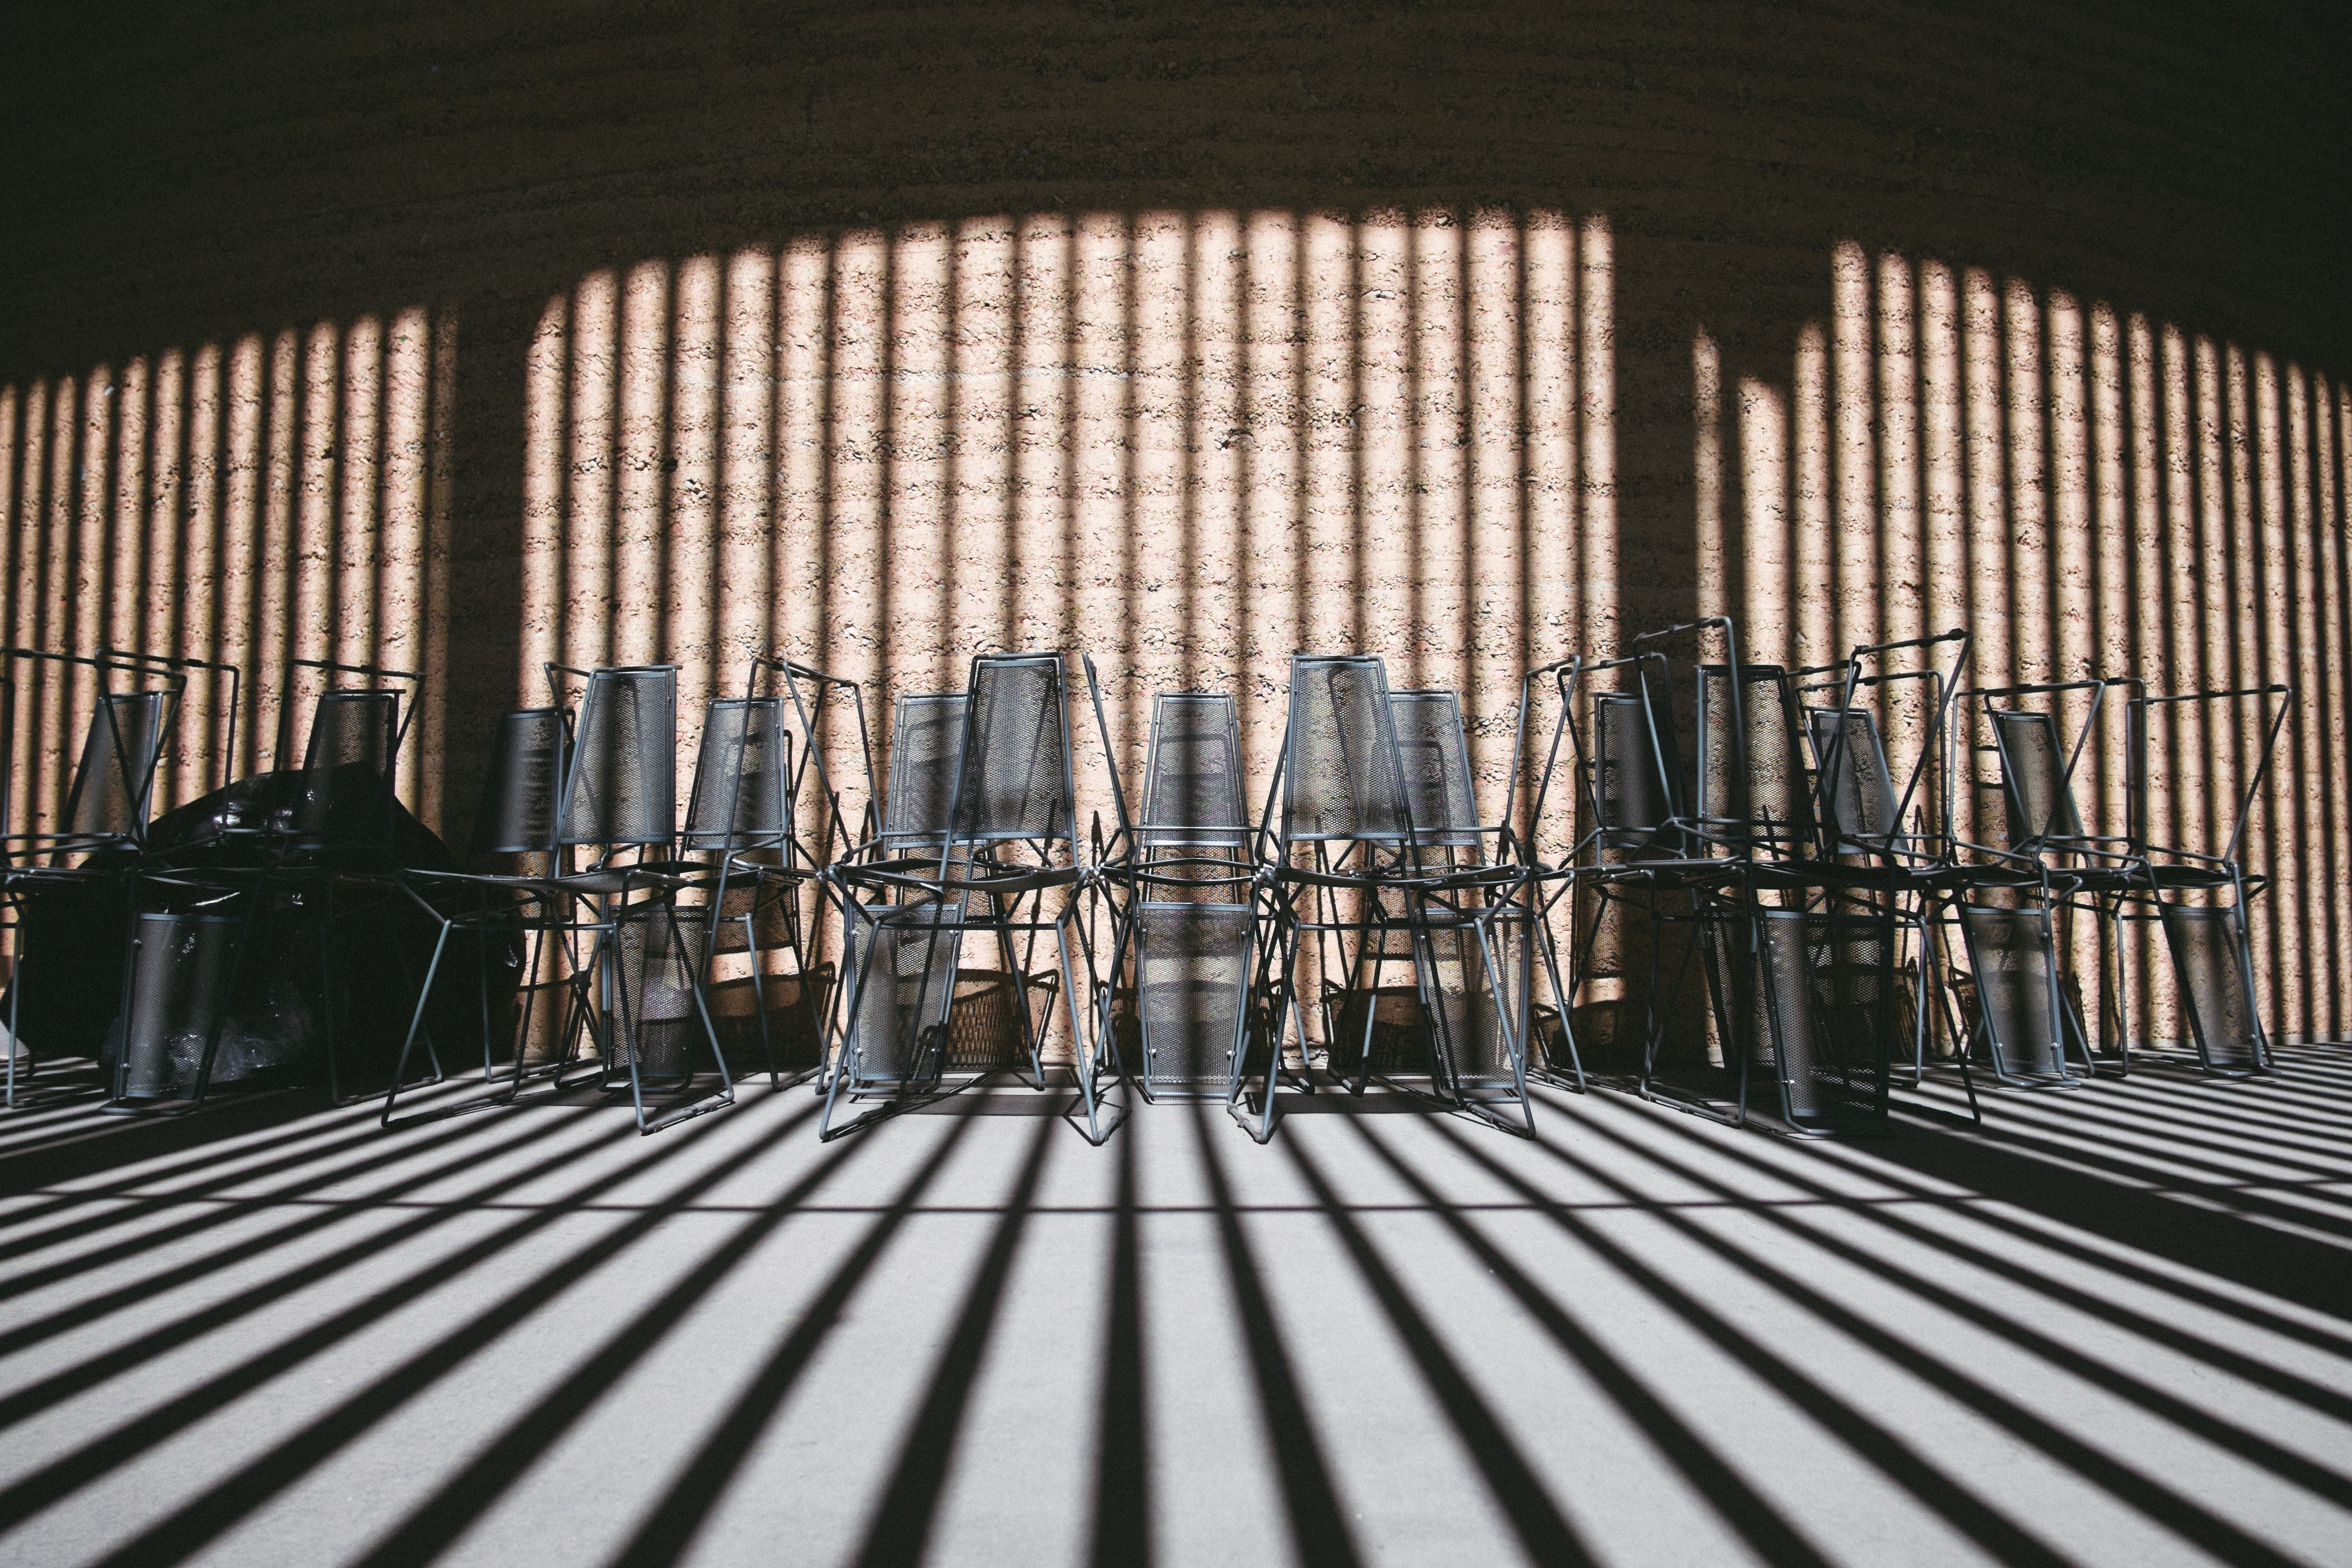 Stacked chairs along the wall covered by shadows of the building